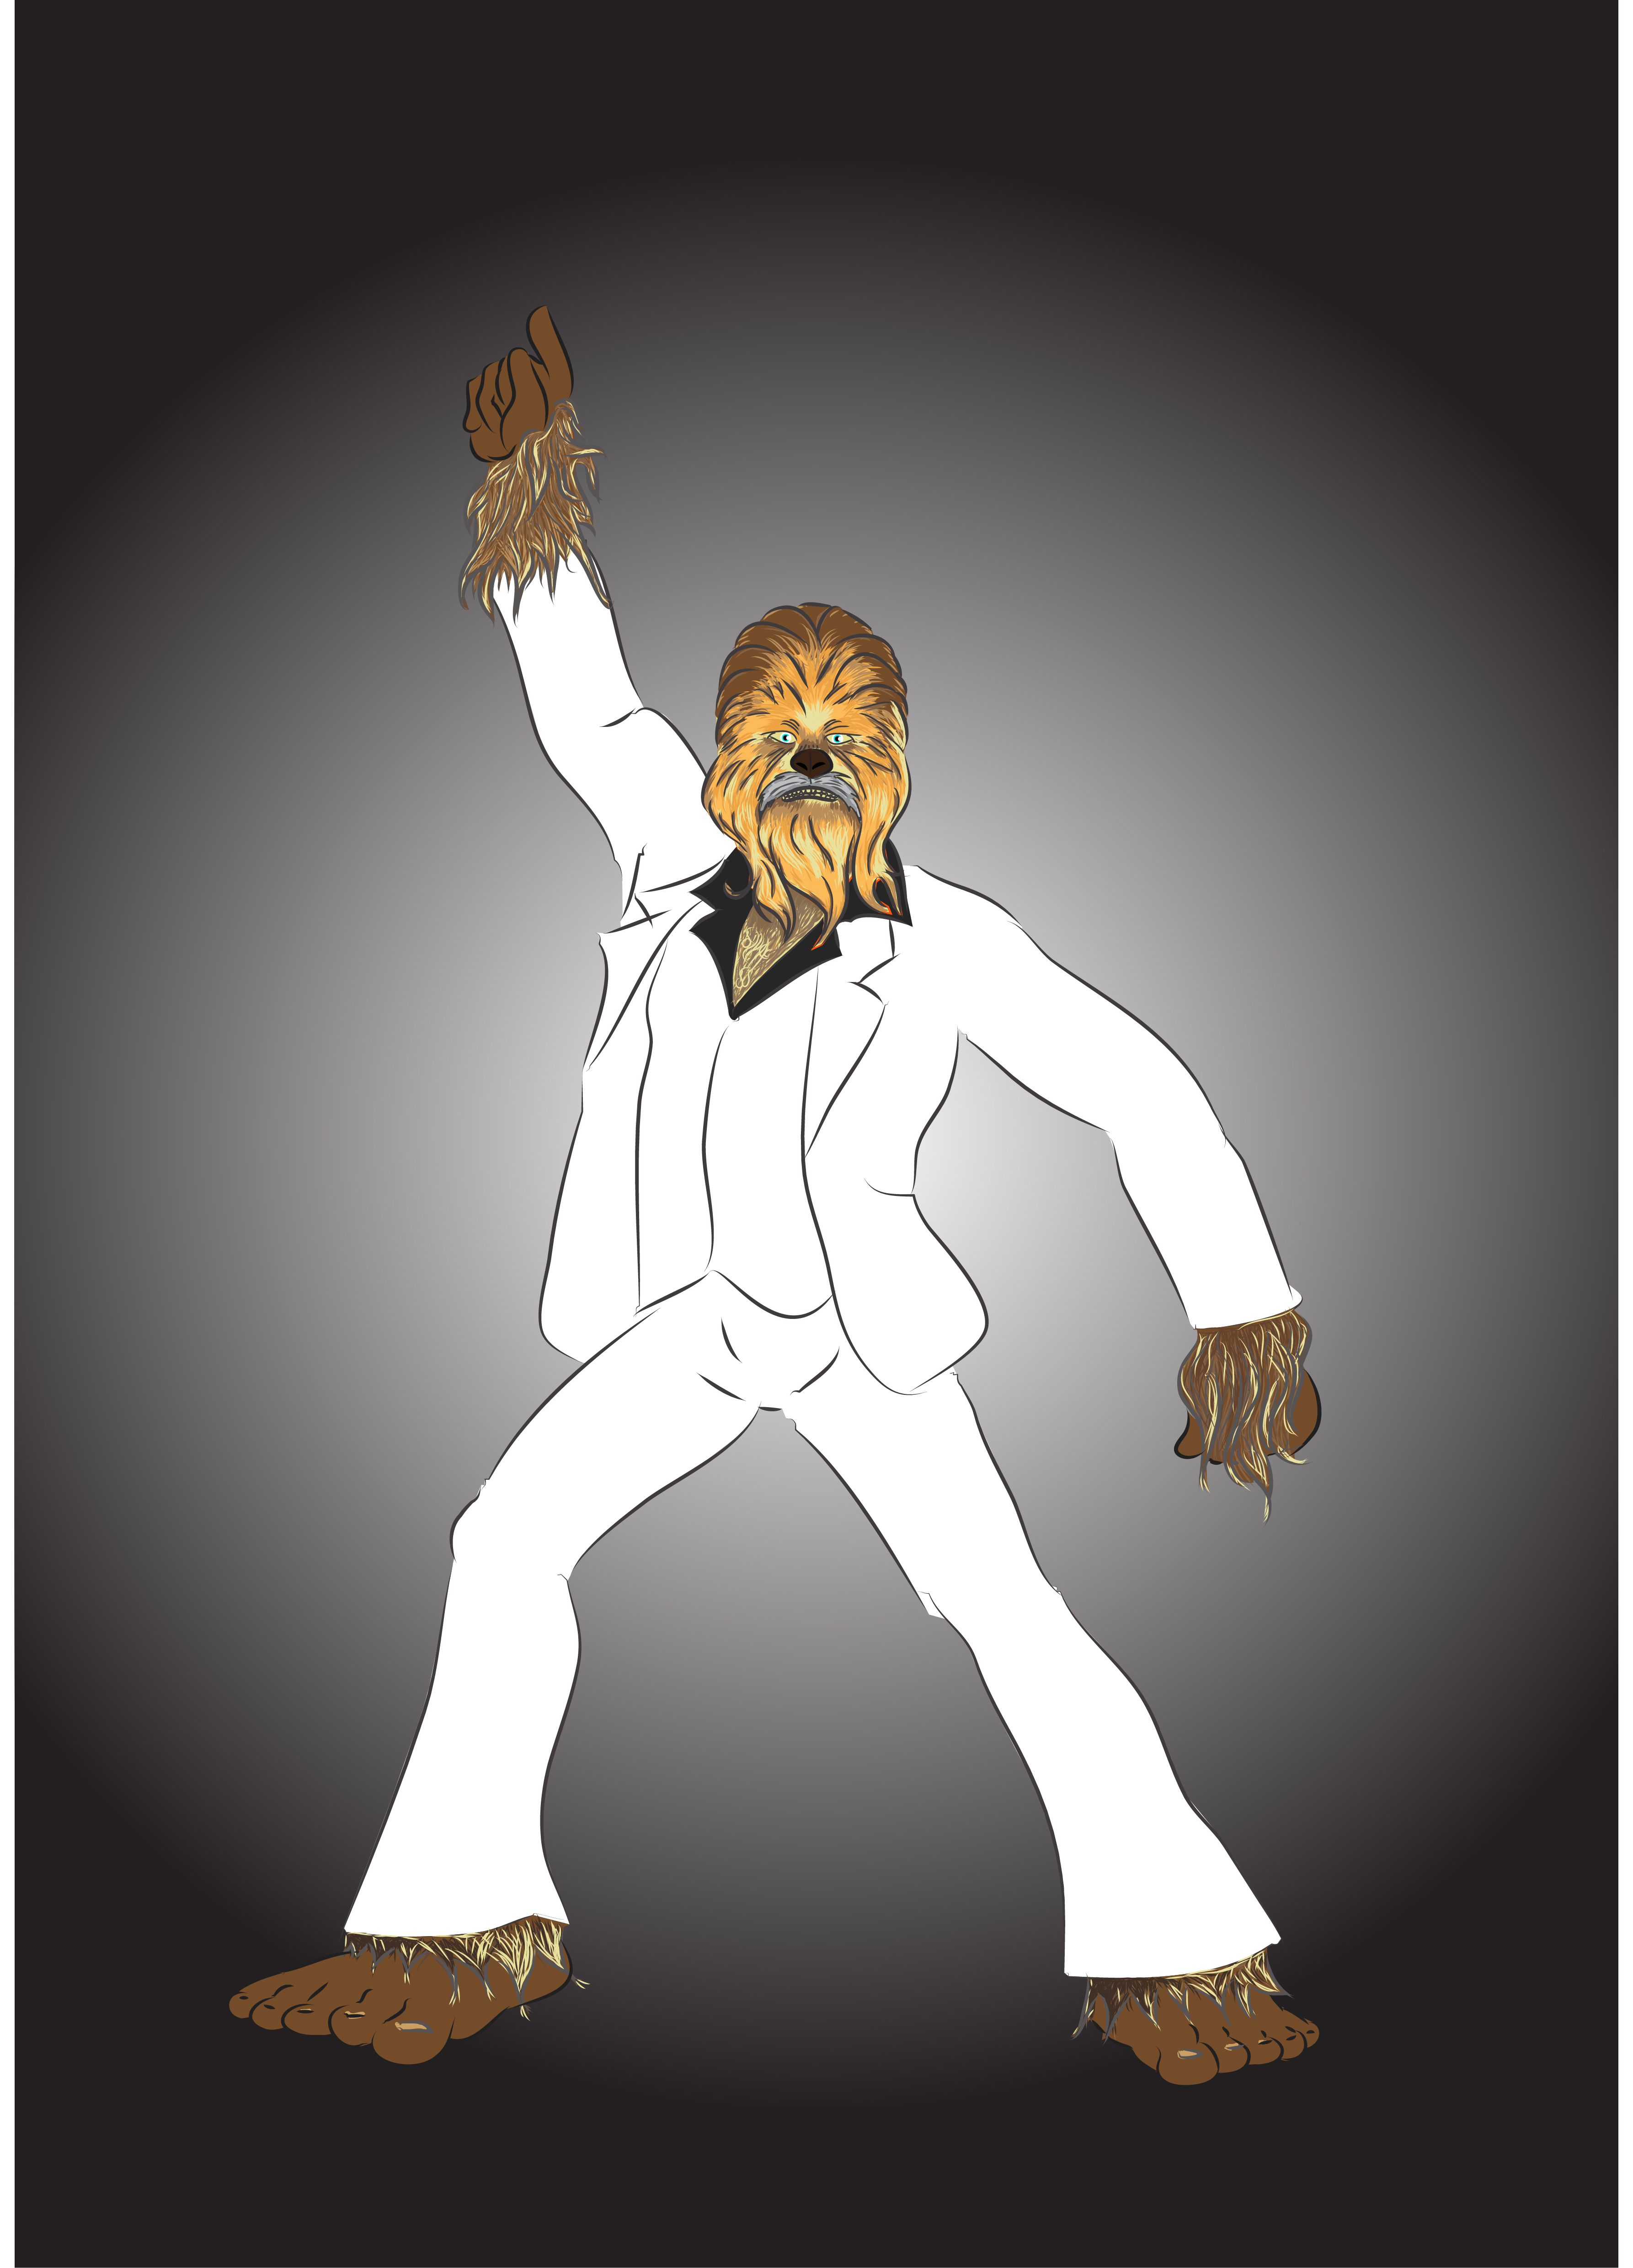 sat night fever chewbacca or Bigfoot